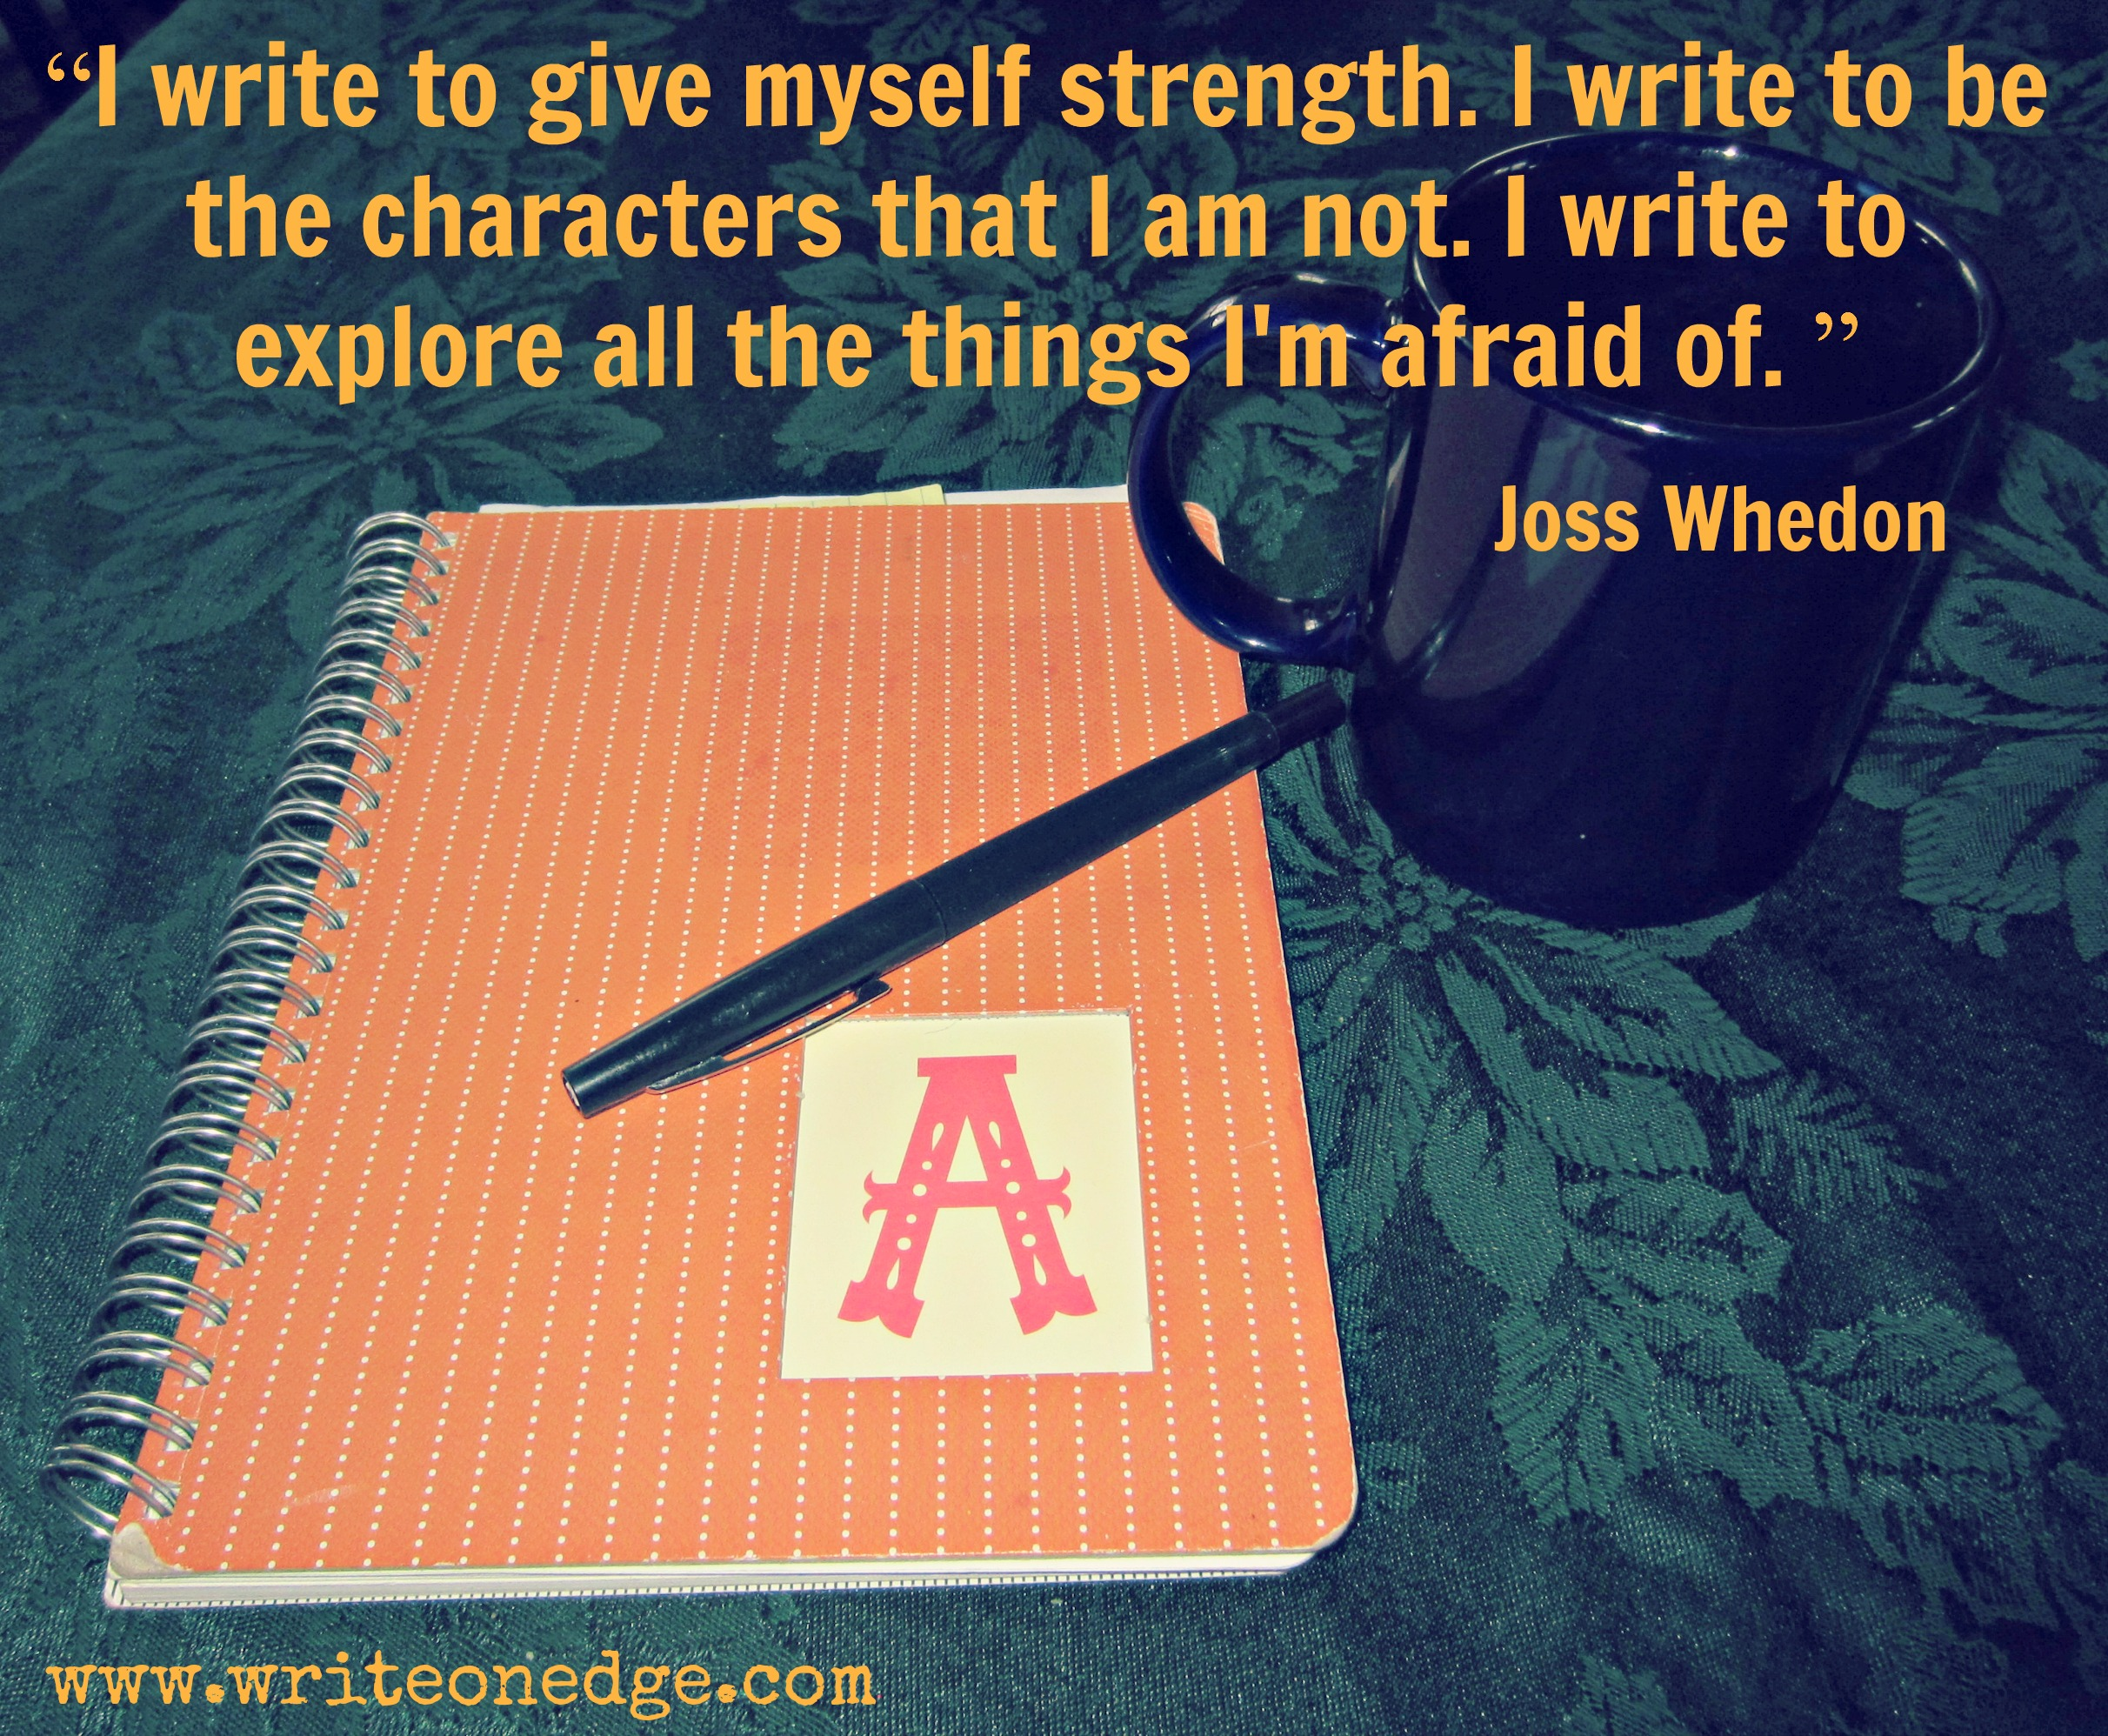 Joss Whedon's quote #2